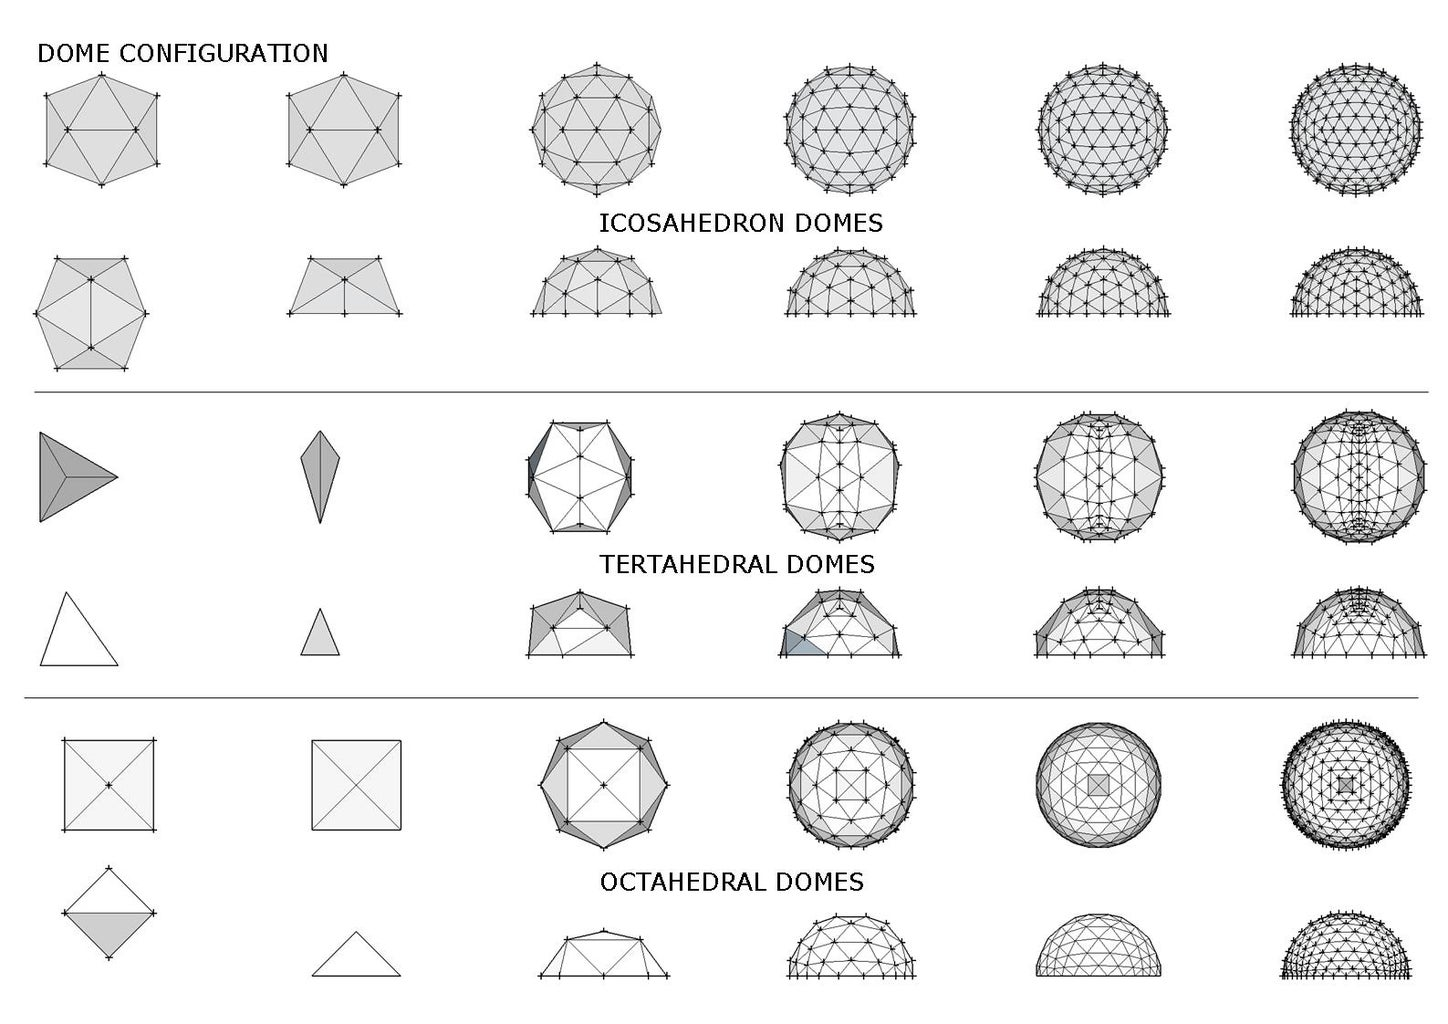 Choosing a Style of Dome